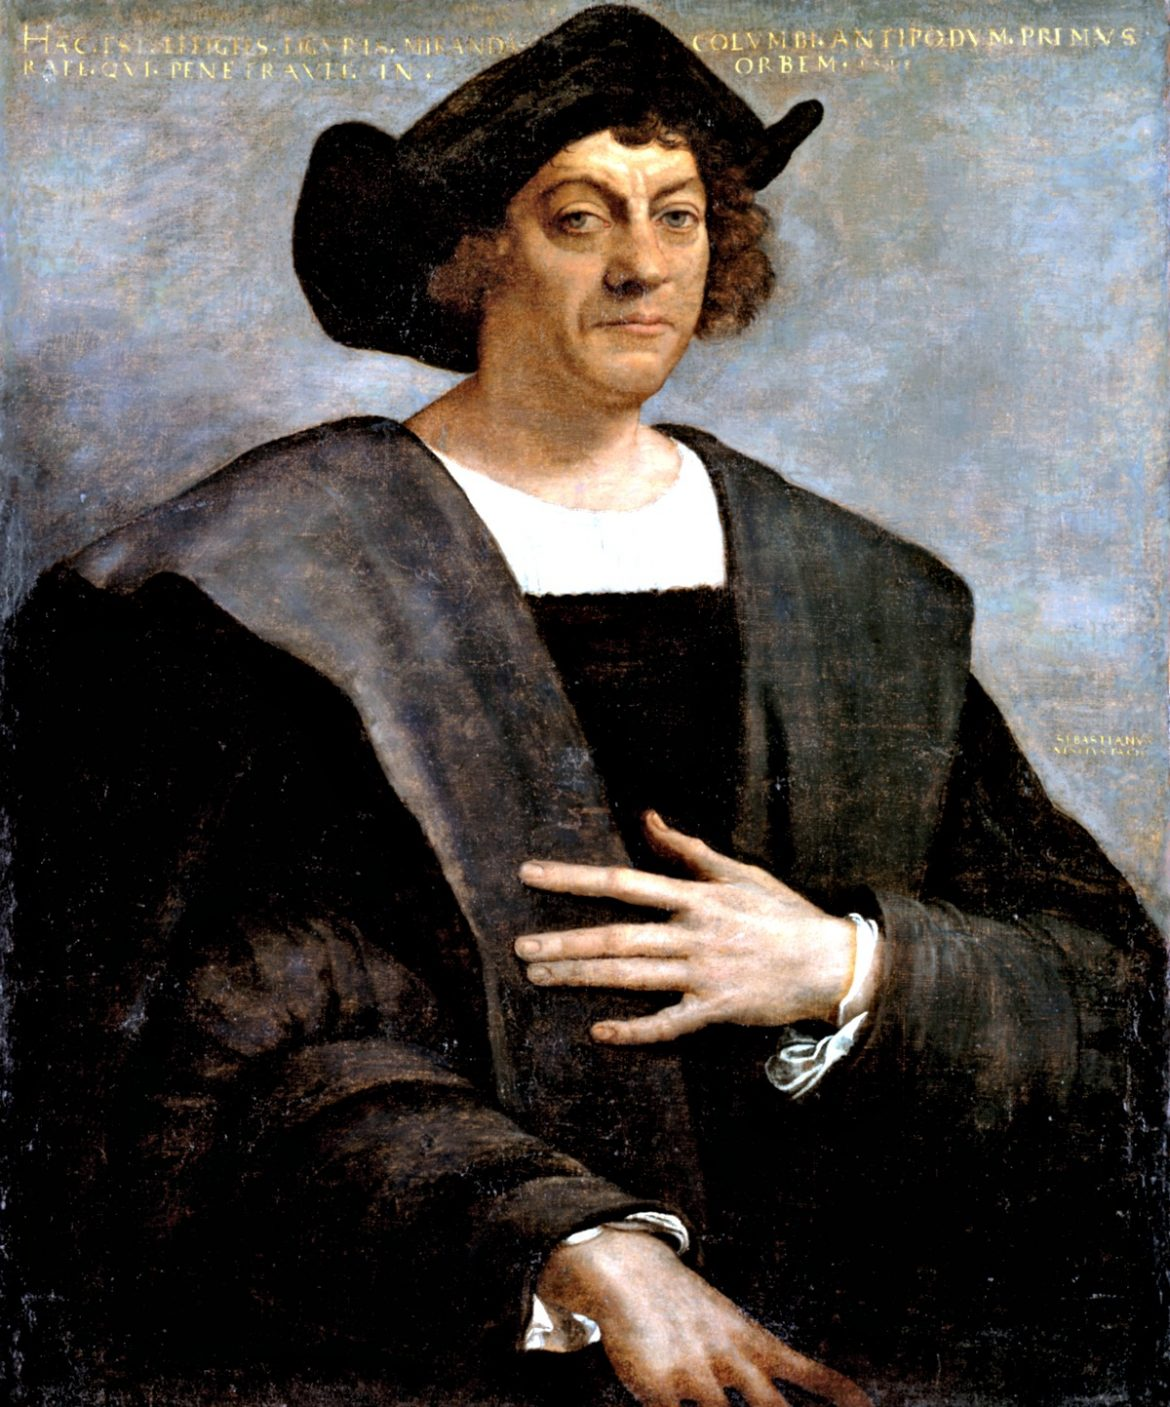 It's his day (Christopher Columbus) ... and Worcester has big plans.